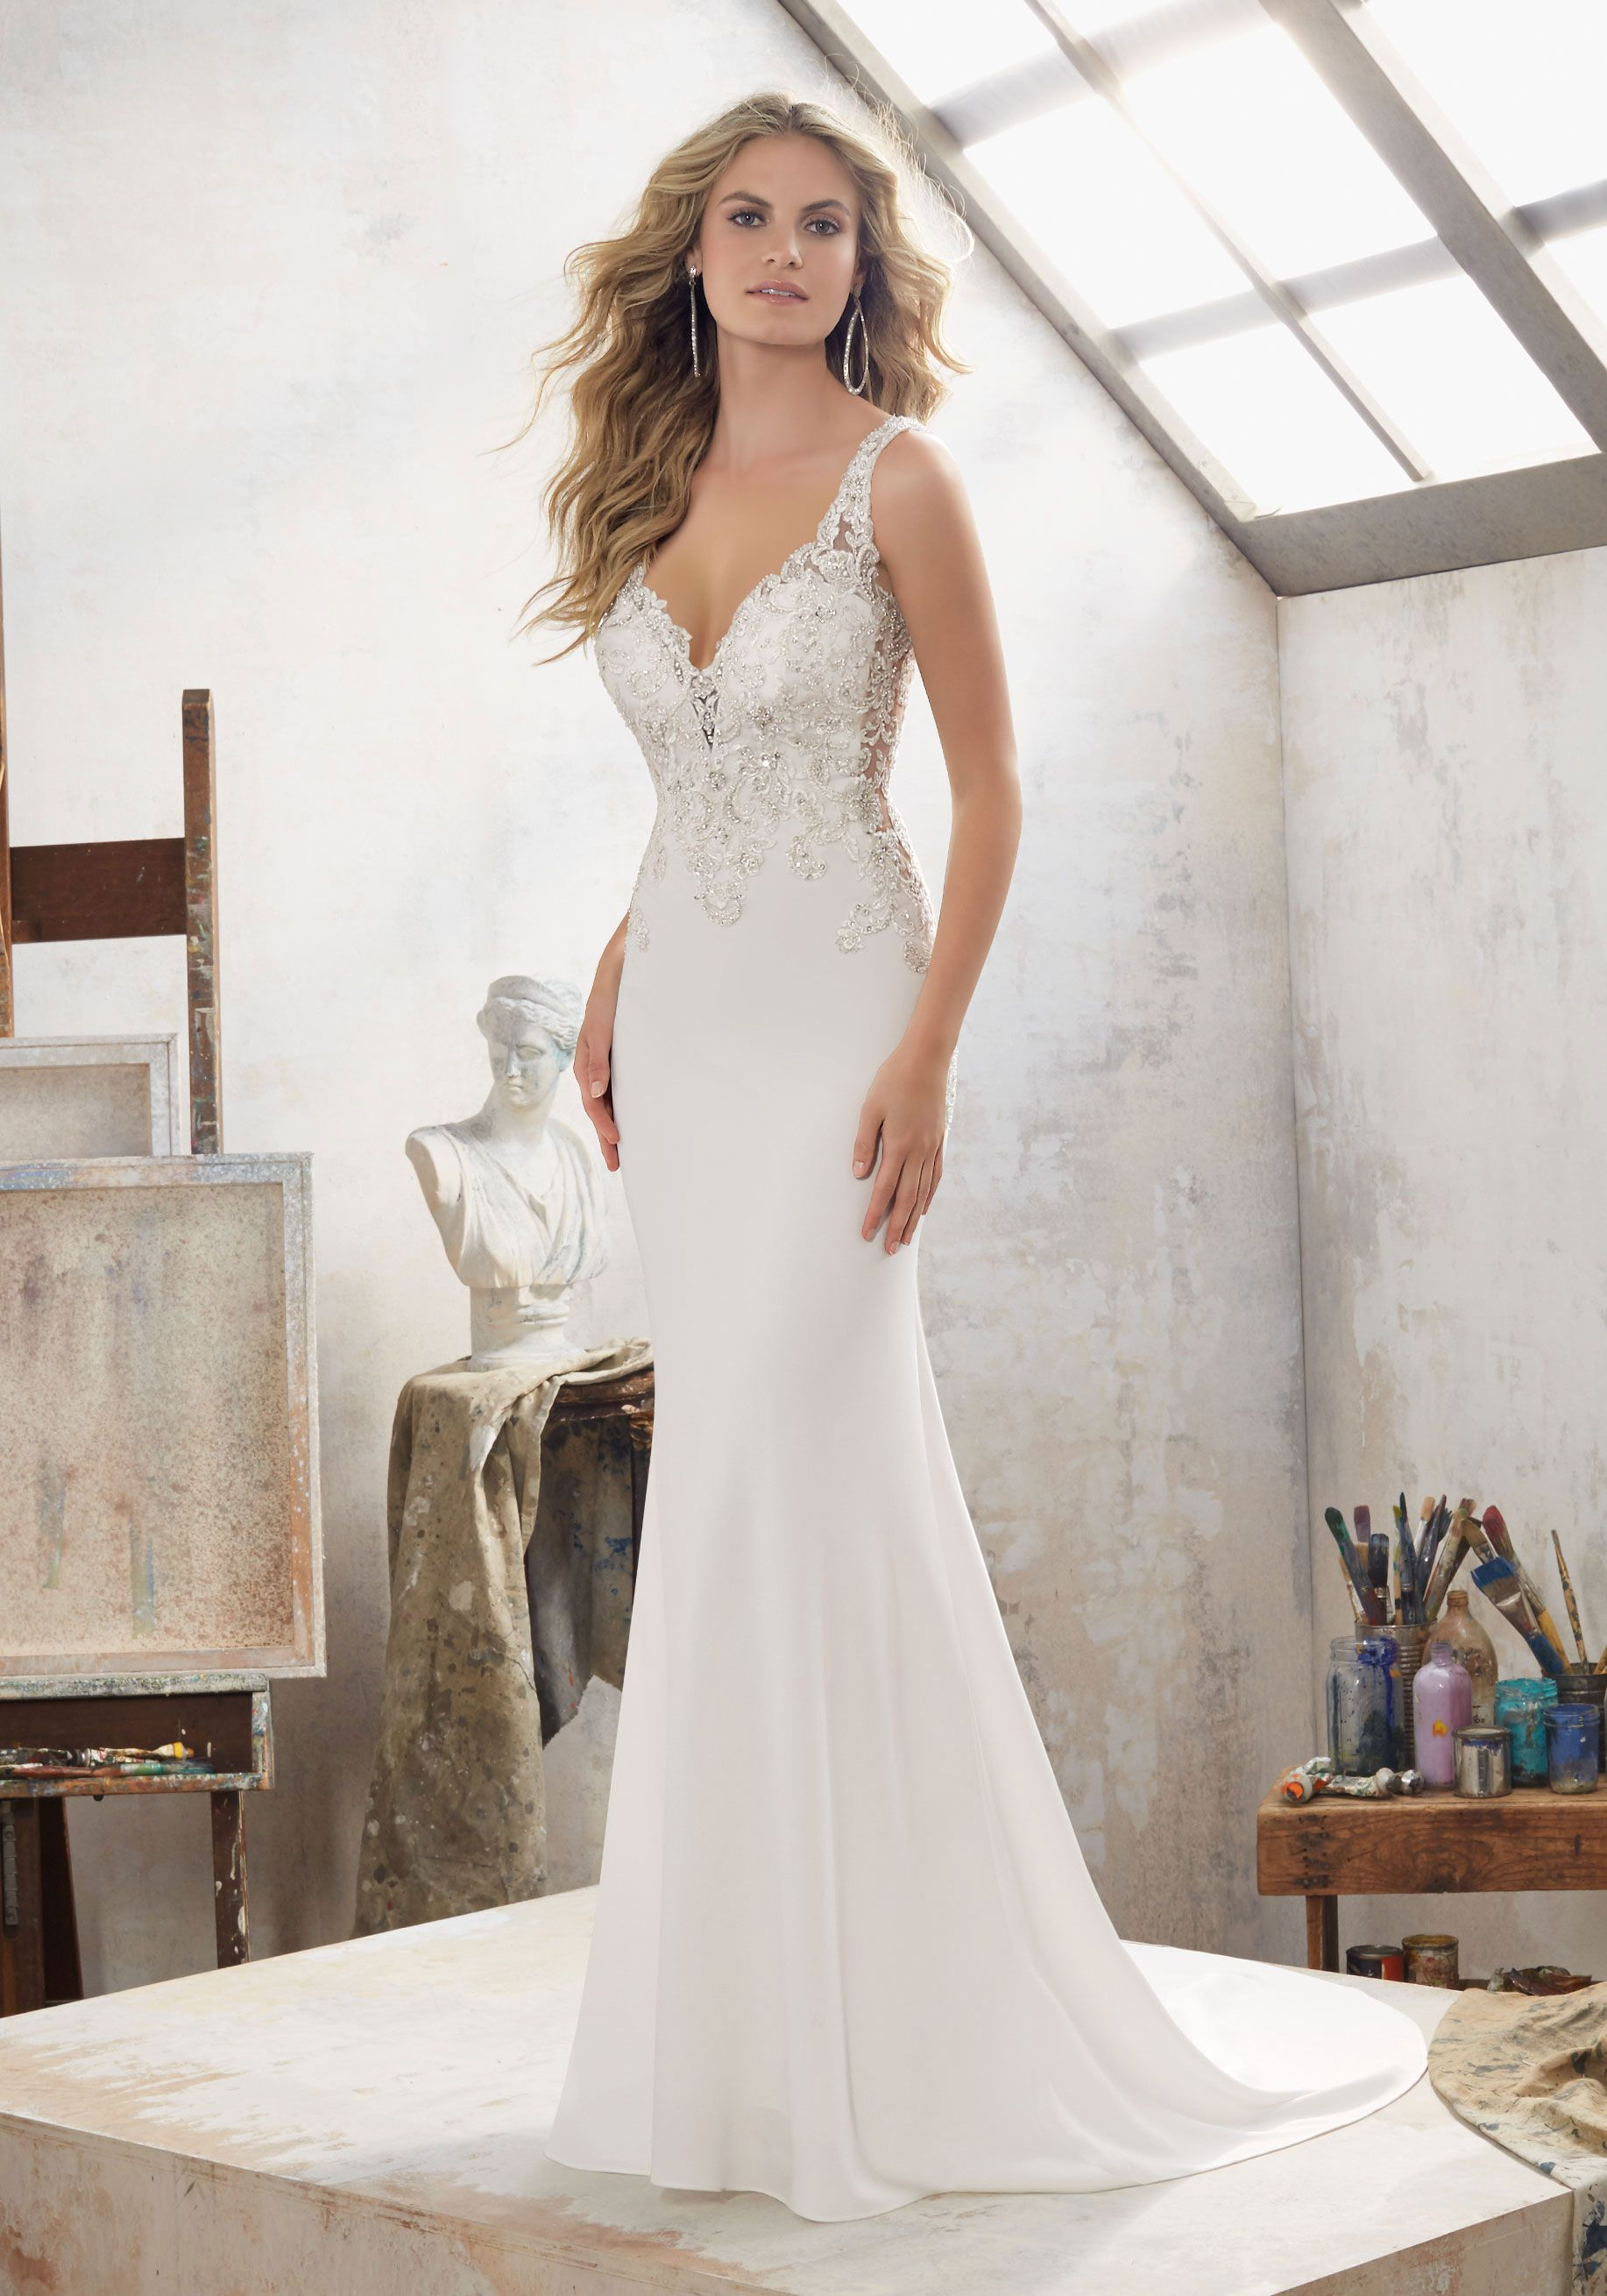 Beautiful  Wedding Dresses and Bridal Gowns by Morilee Stunning Sheath Bridal Dress with Crystals on the Bodice and the Open Back and Illusion Cutouts at the